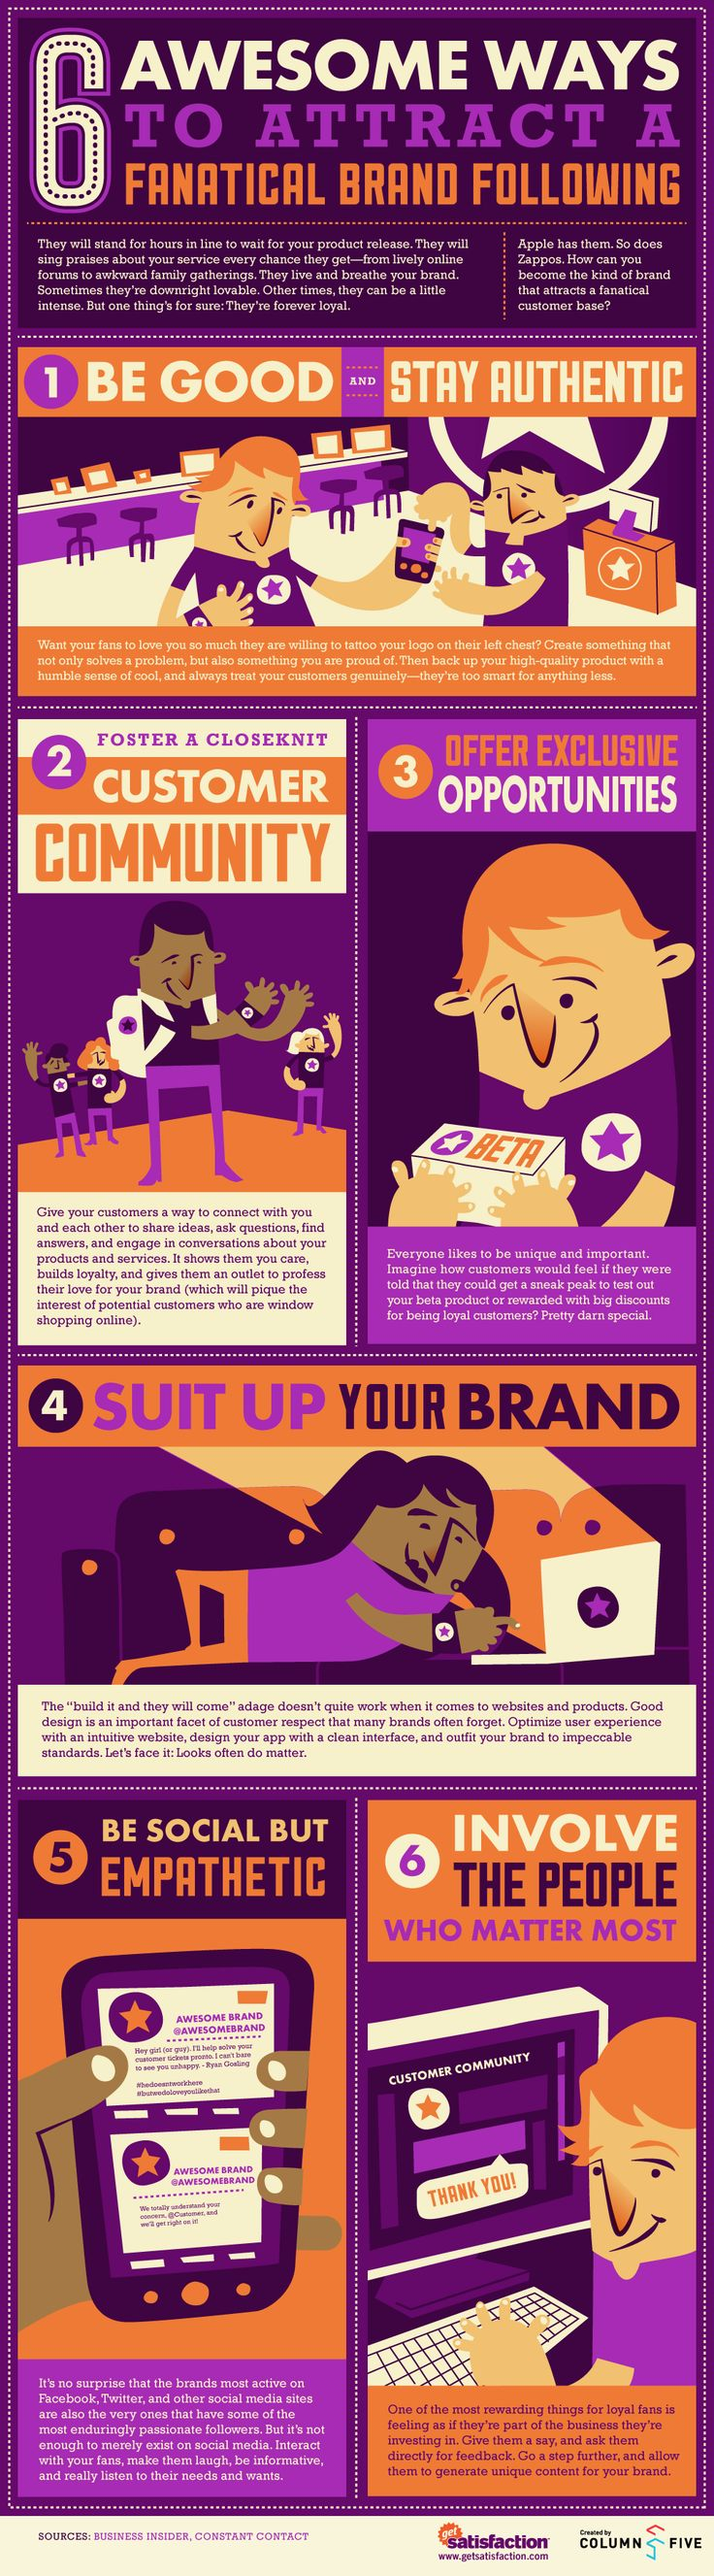 6 Awesome Ways to Attract a Fanatical #Brand Following